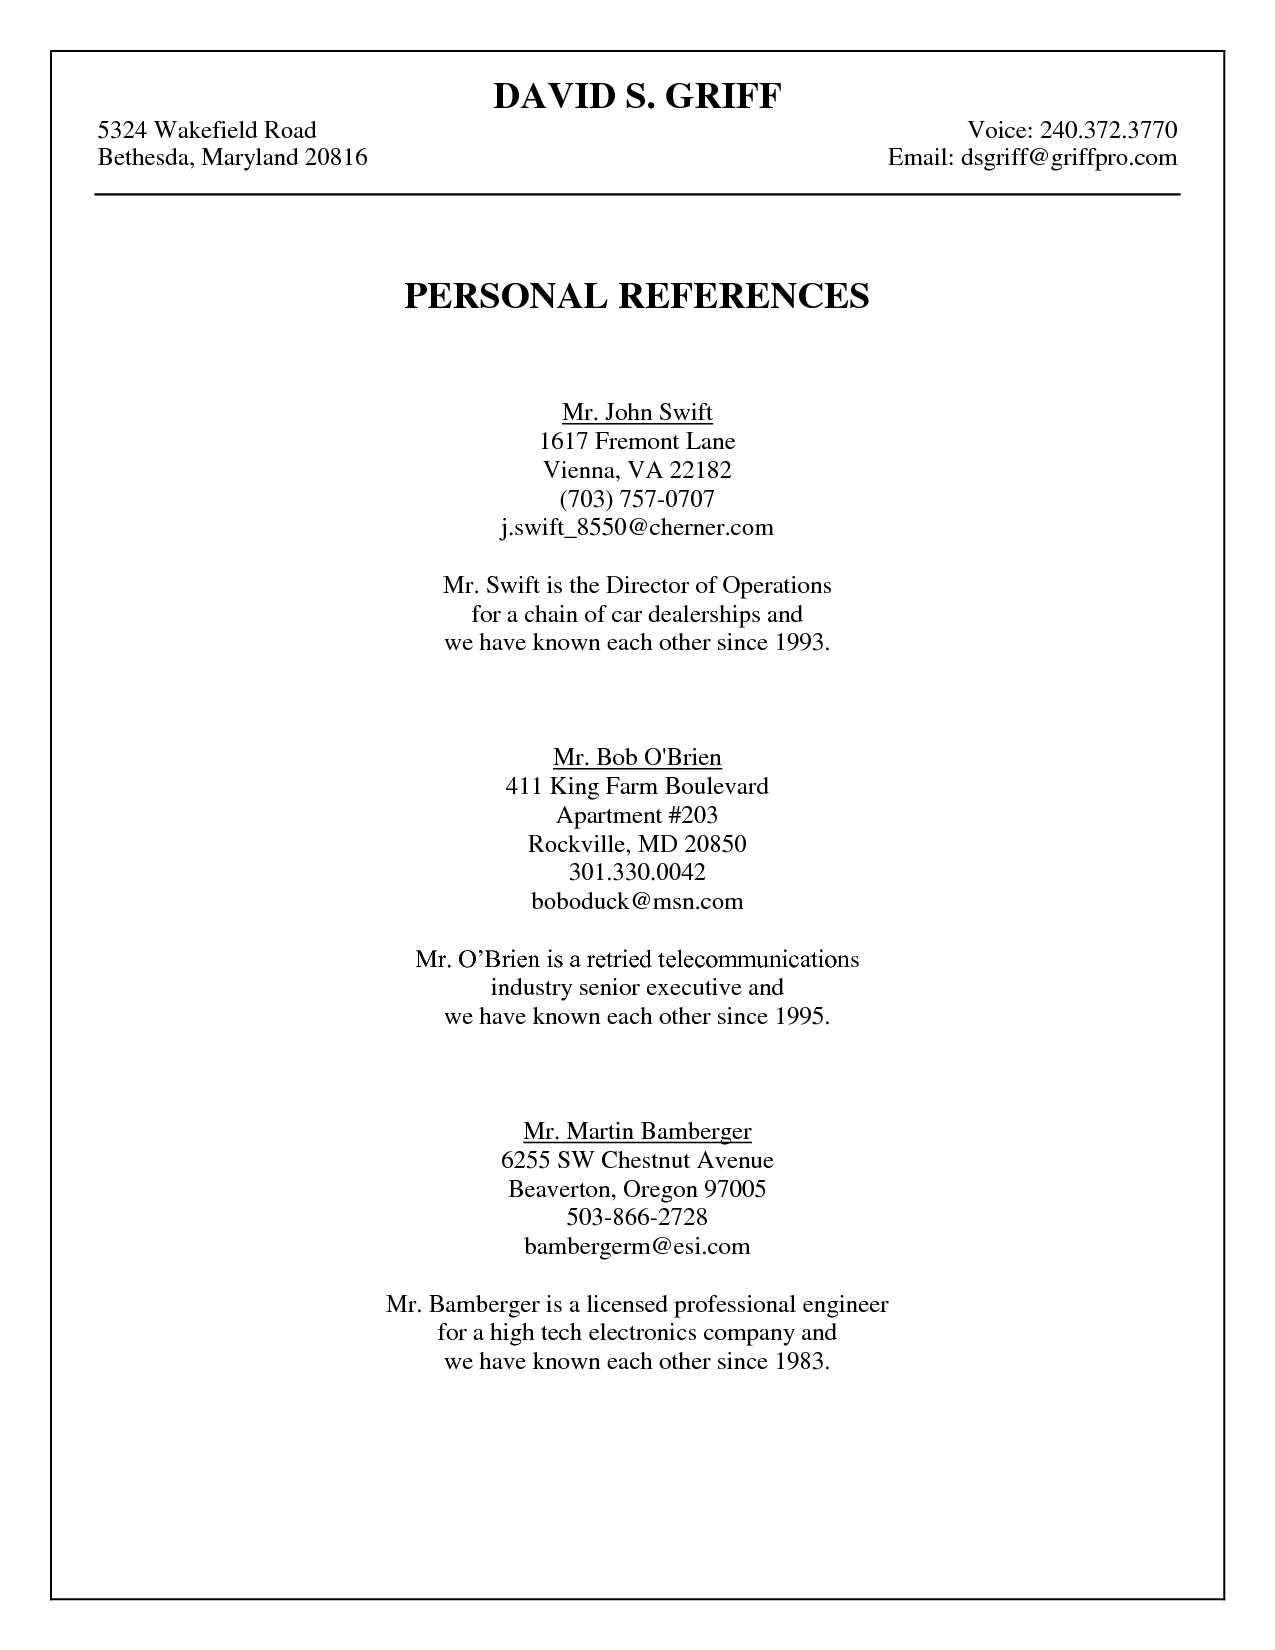 job reference page format online resume format job reference page format format a list of job references sample template page professional reference sheet